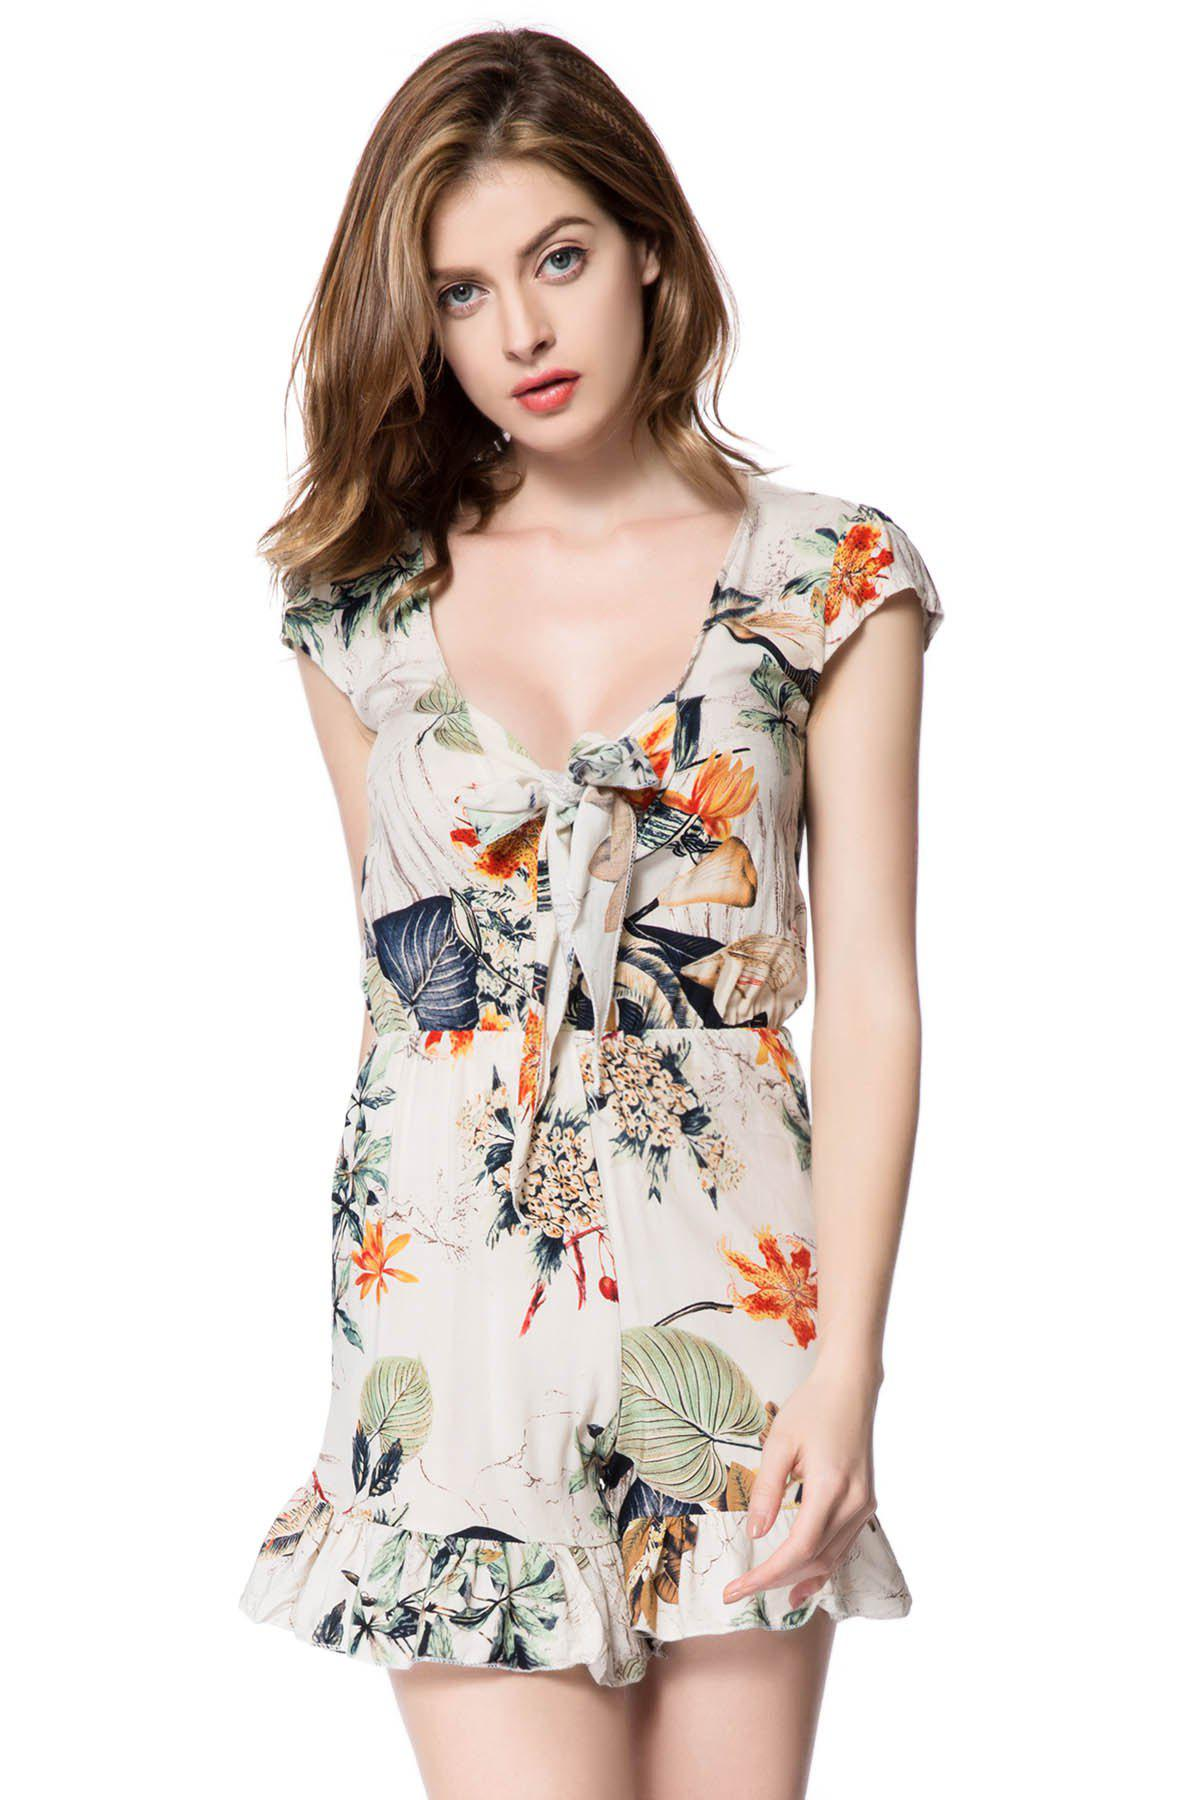 Stylish Women's Plunging Neckline Floral Print Romper - OFF WHITE M